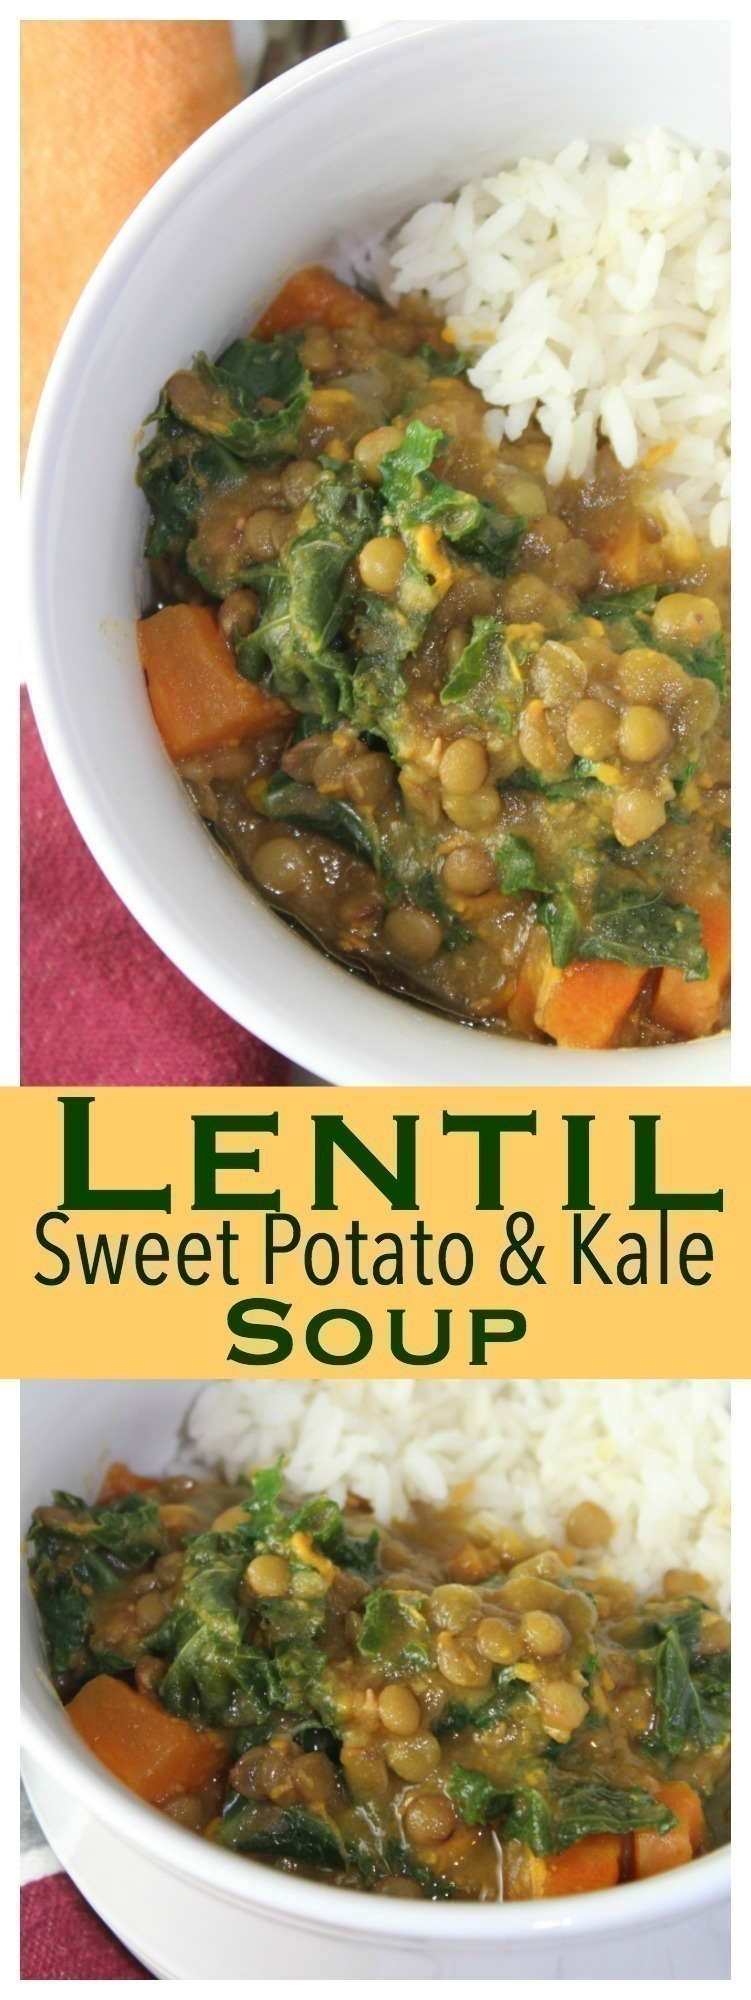 Lentil, Sweet Potato & Kale Soup